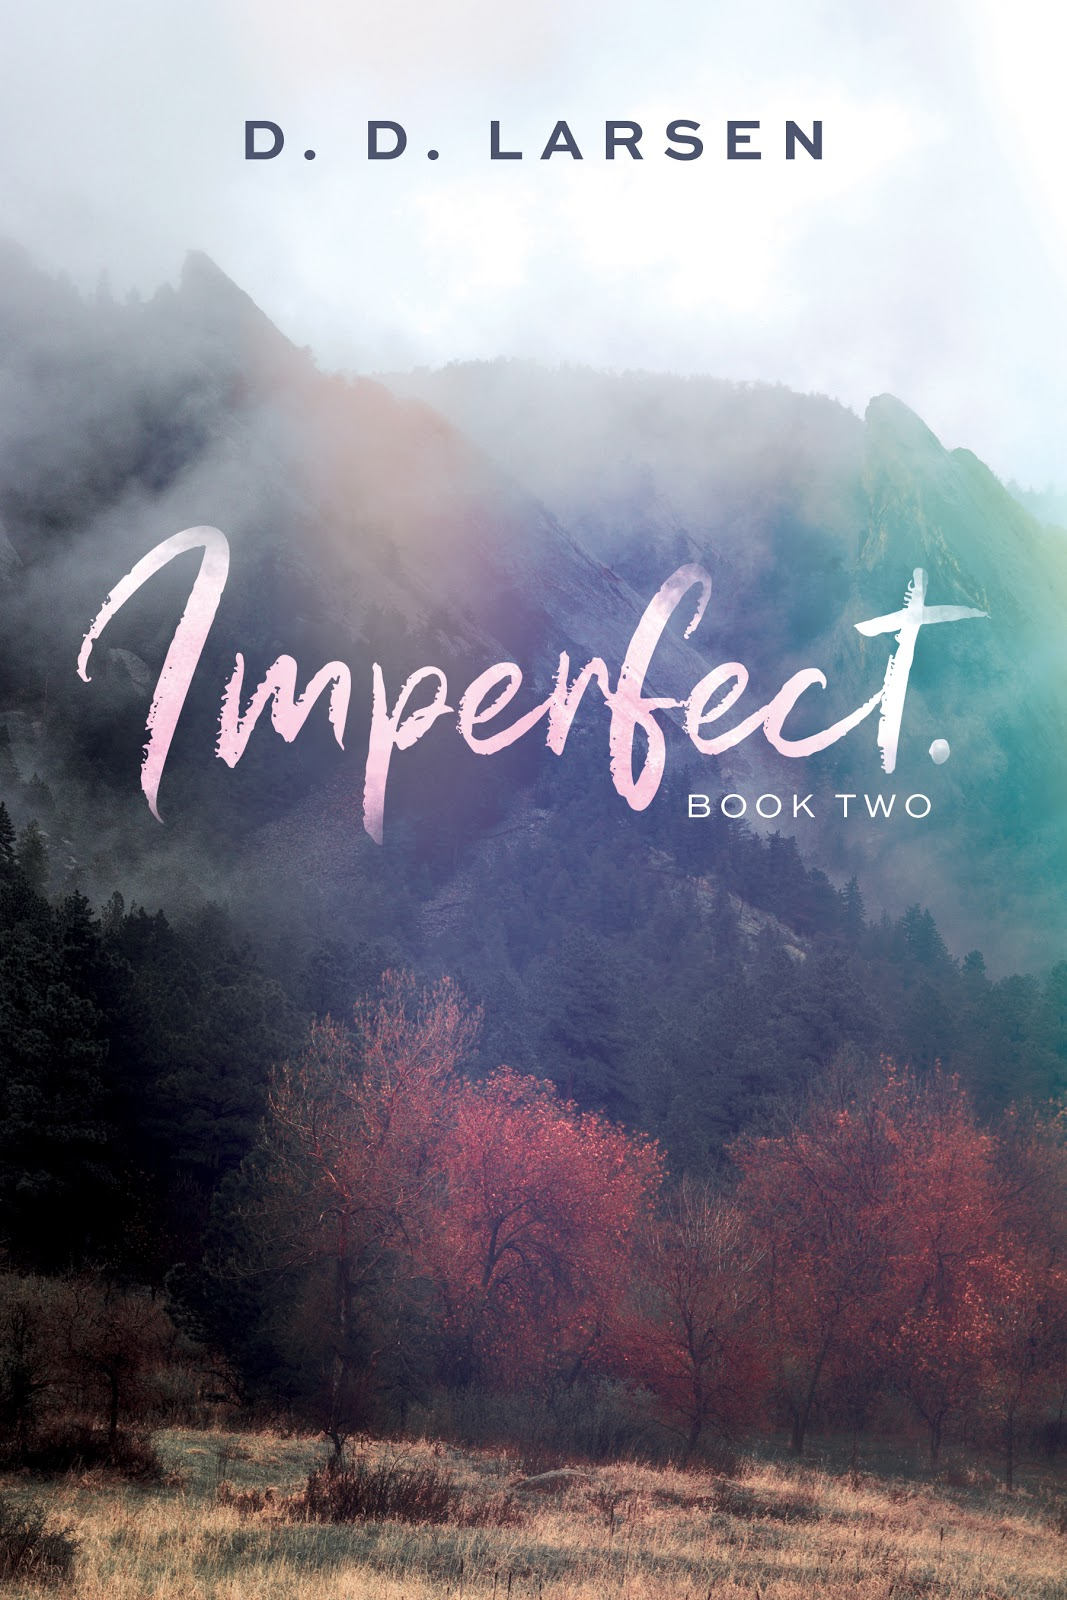 REVIEW: Imperfect by D.D. Larsen